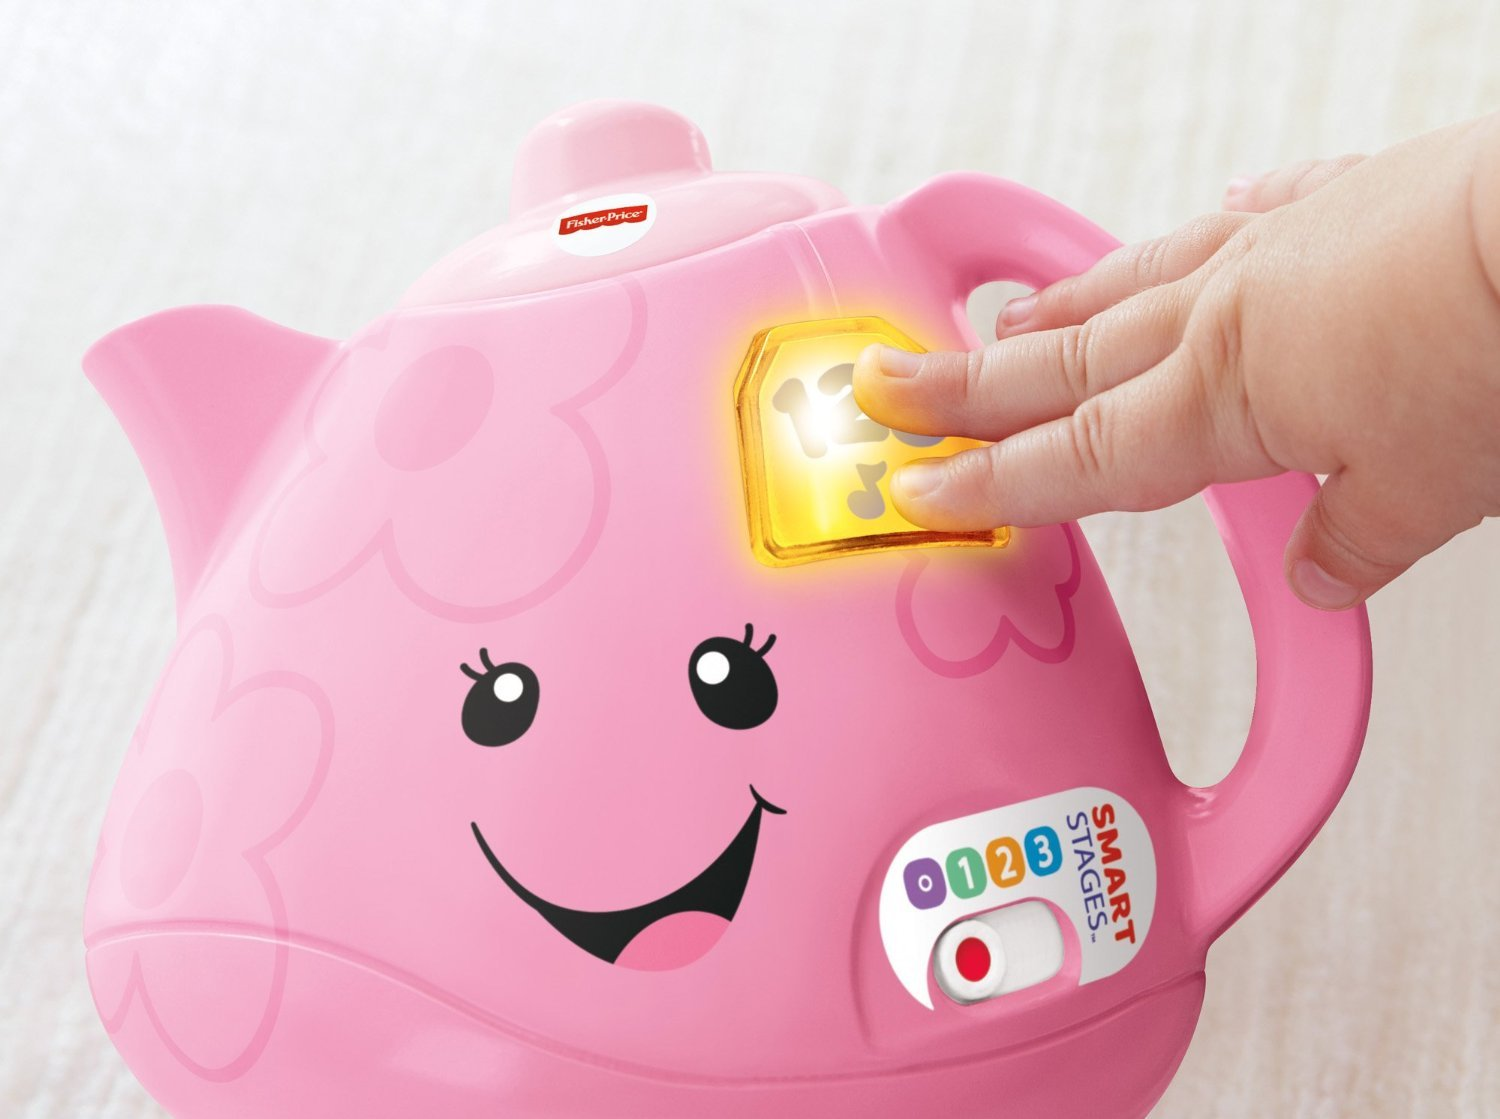 Fisher-Price cdg08 Laugh and Learn Smart etapas Juego de té ...